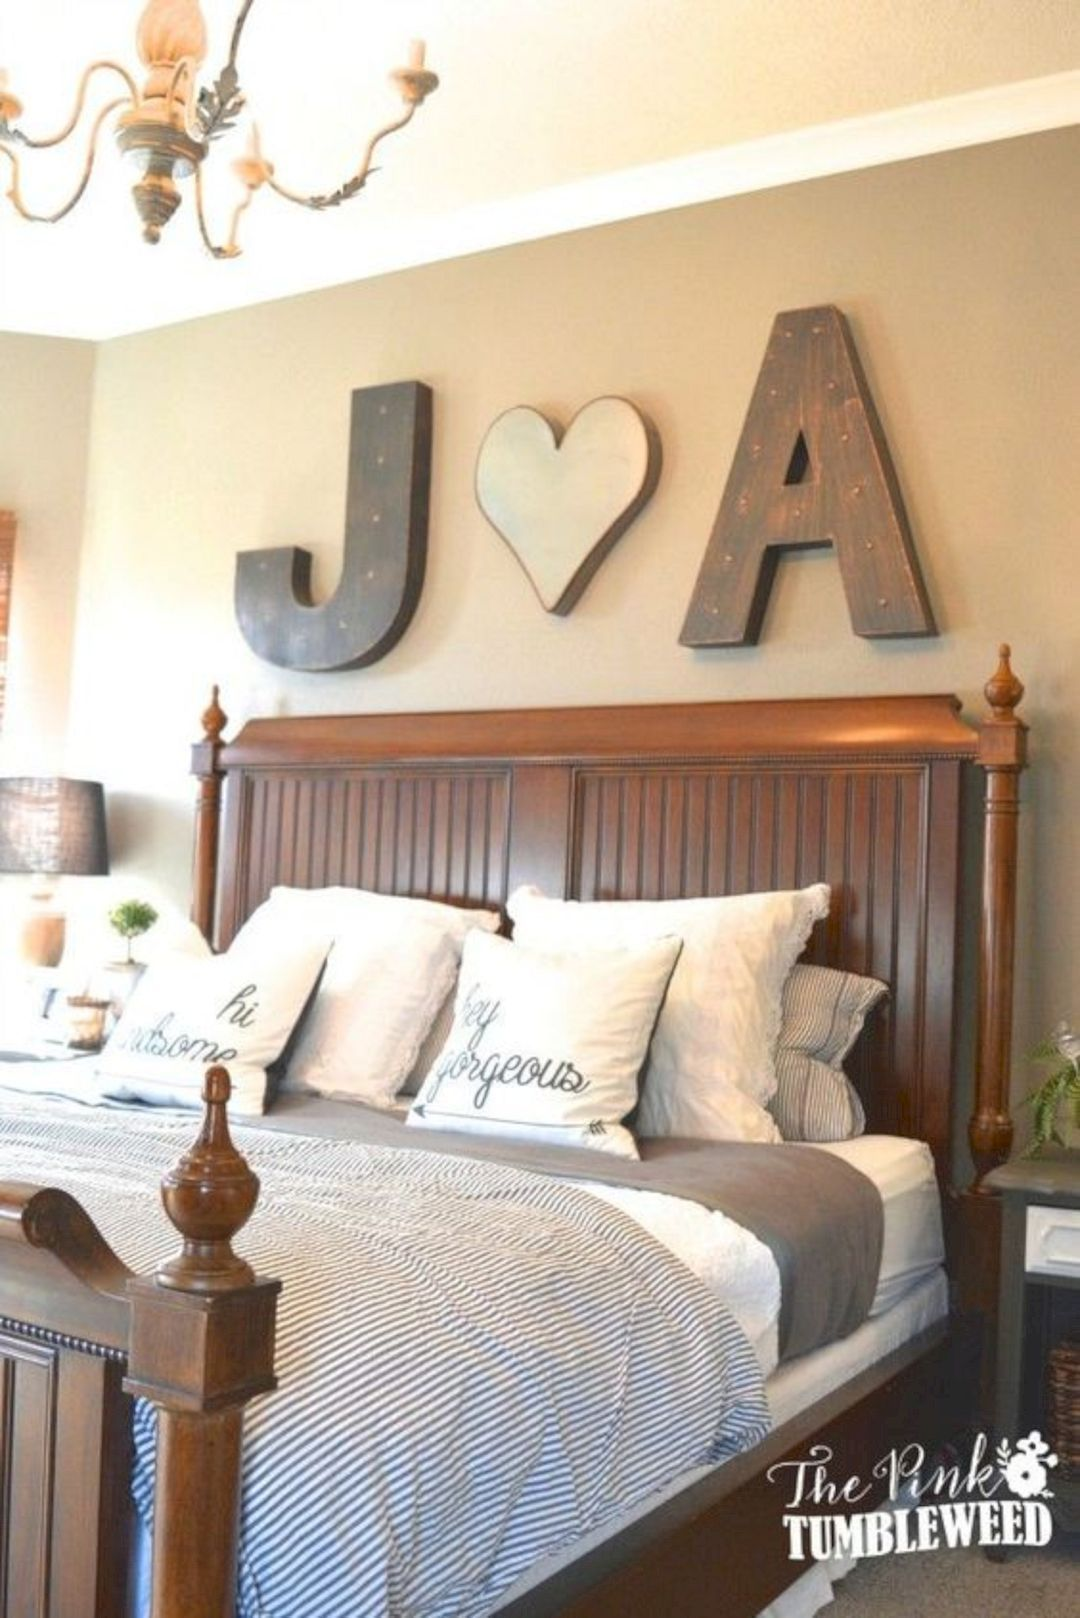 Easy Bedroom Decorating Walls Html on small bathroom walls, bathroom design walls, bed walls, decorating beach house, home decor walls,